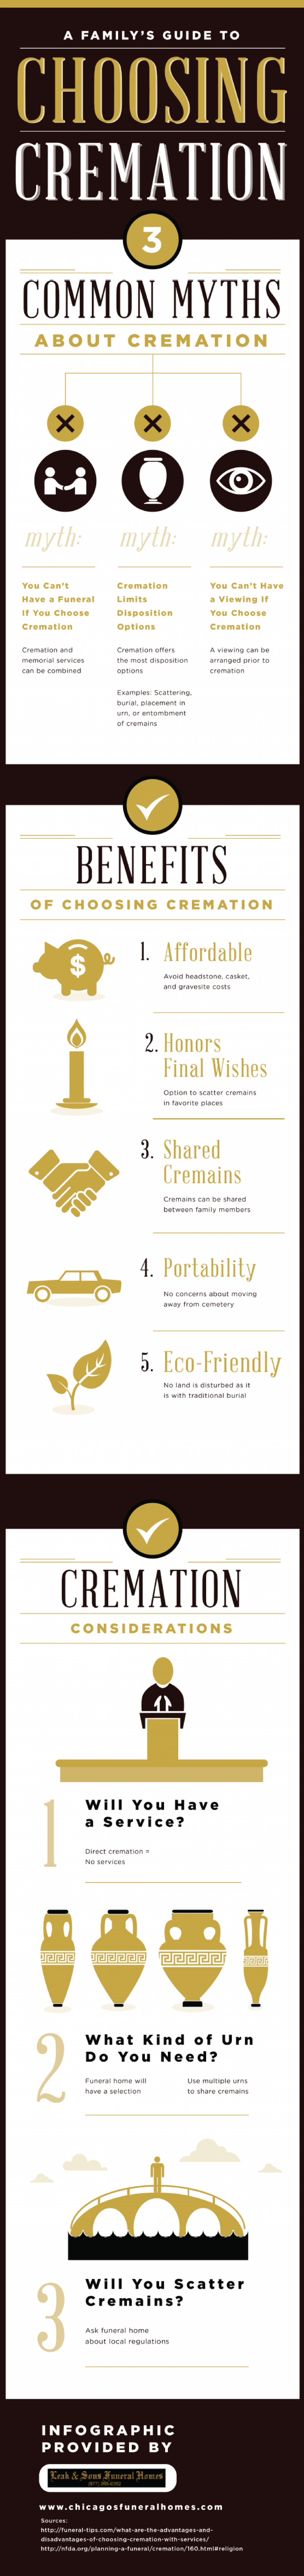 A Family's Guide to Choosing Cremation Infographic